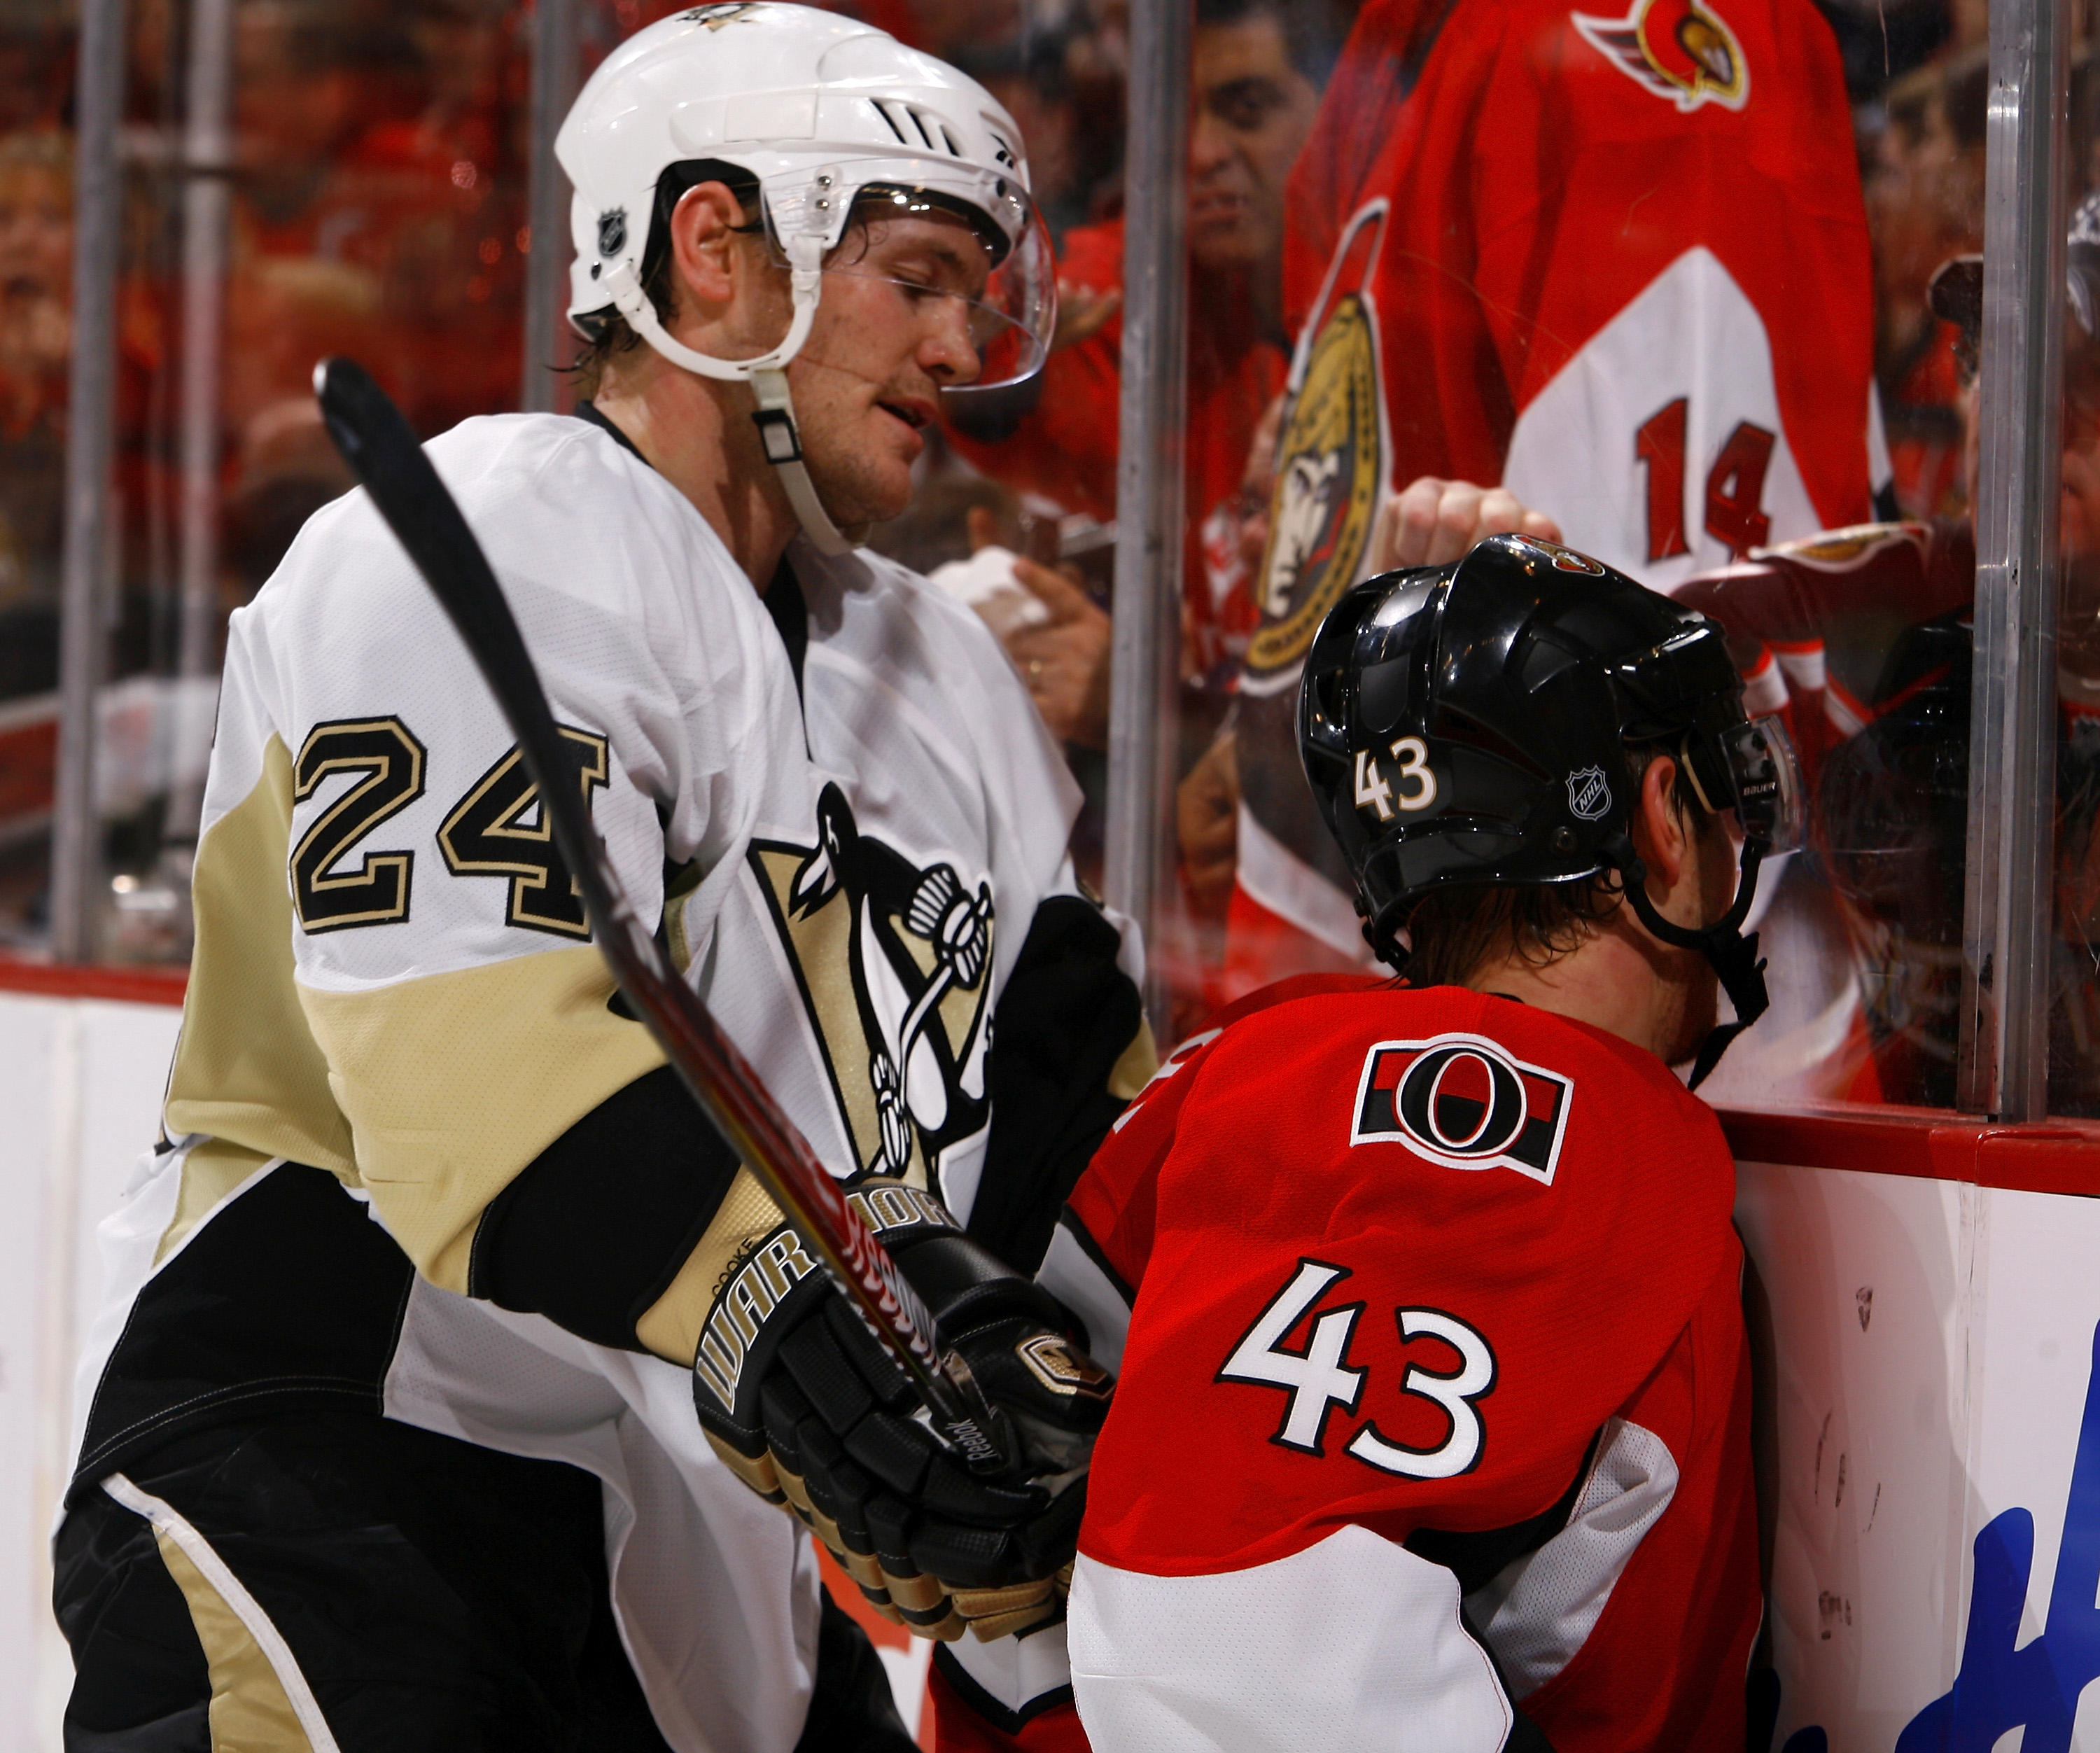 OTTAWA, ON - APRIL 18:  Matt Cooke #24 of the Pittsburgh Penguins reacts after hitting Peter Regin #43 of the Ottawa Senators face first into the boards for a boarding penalty during Game 3 of the Eastern Conference Quaterfinals during the 2010 Stanley Cu